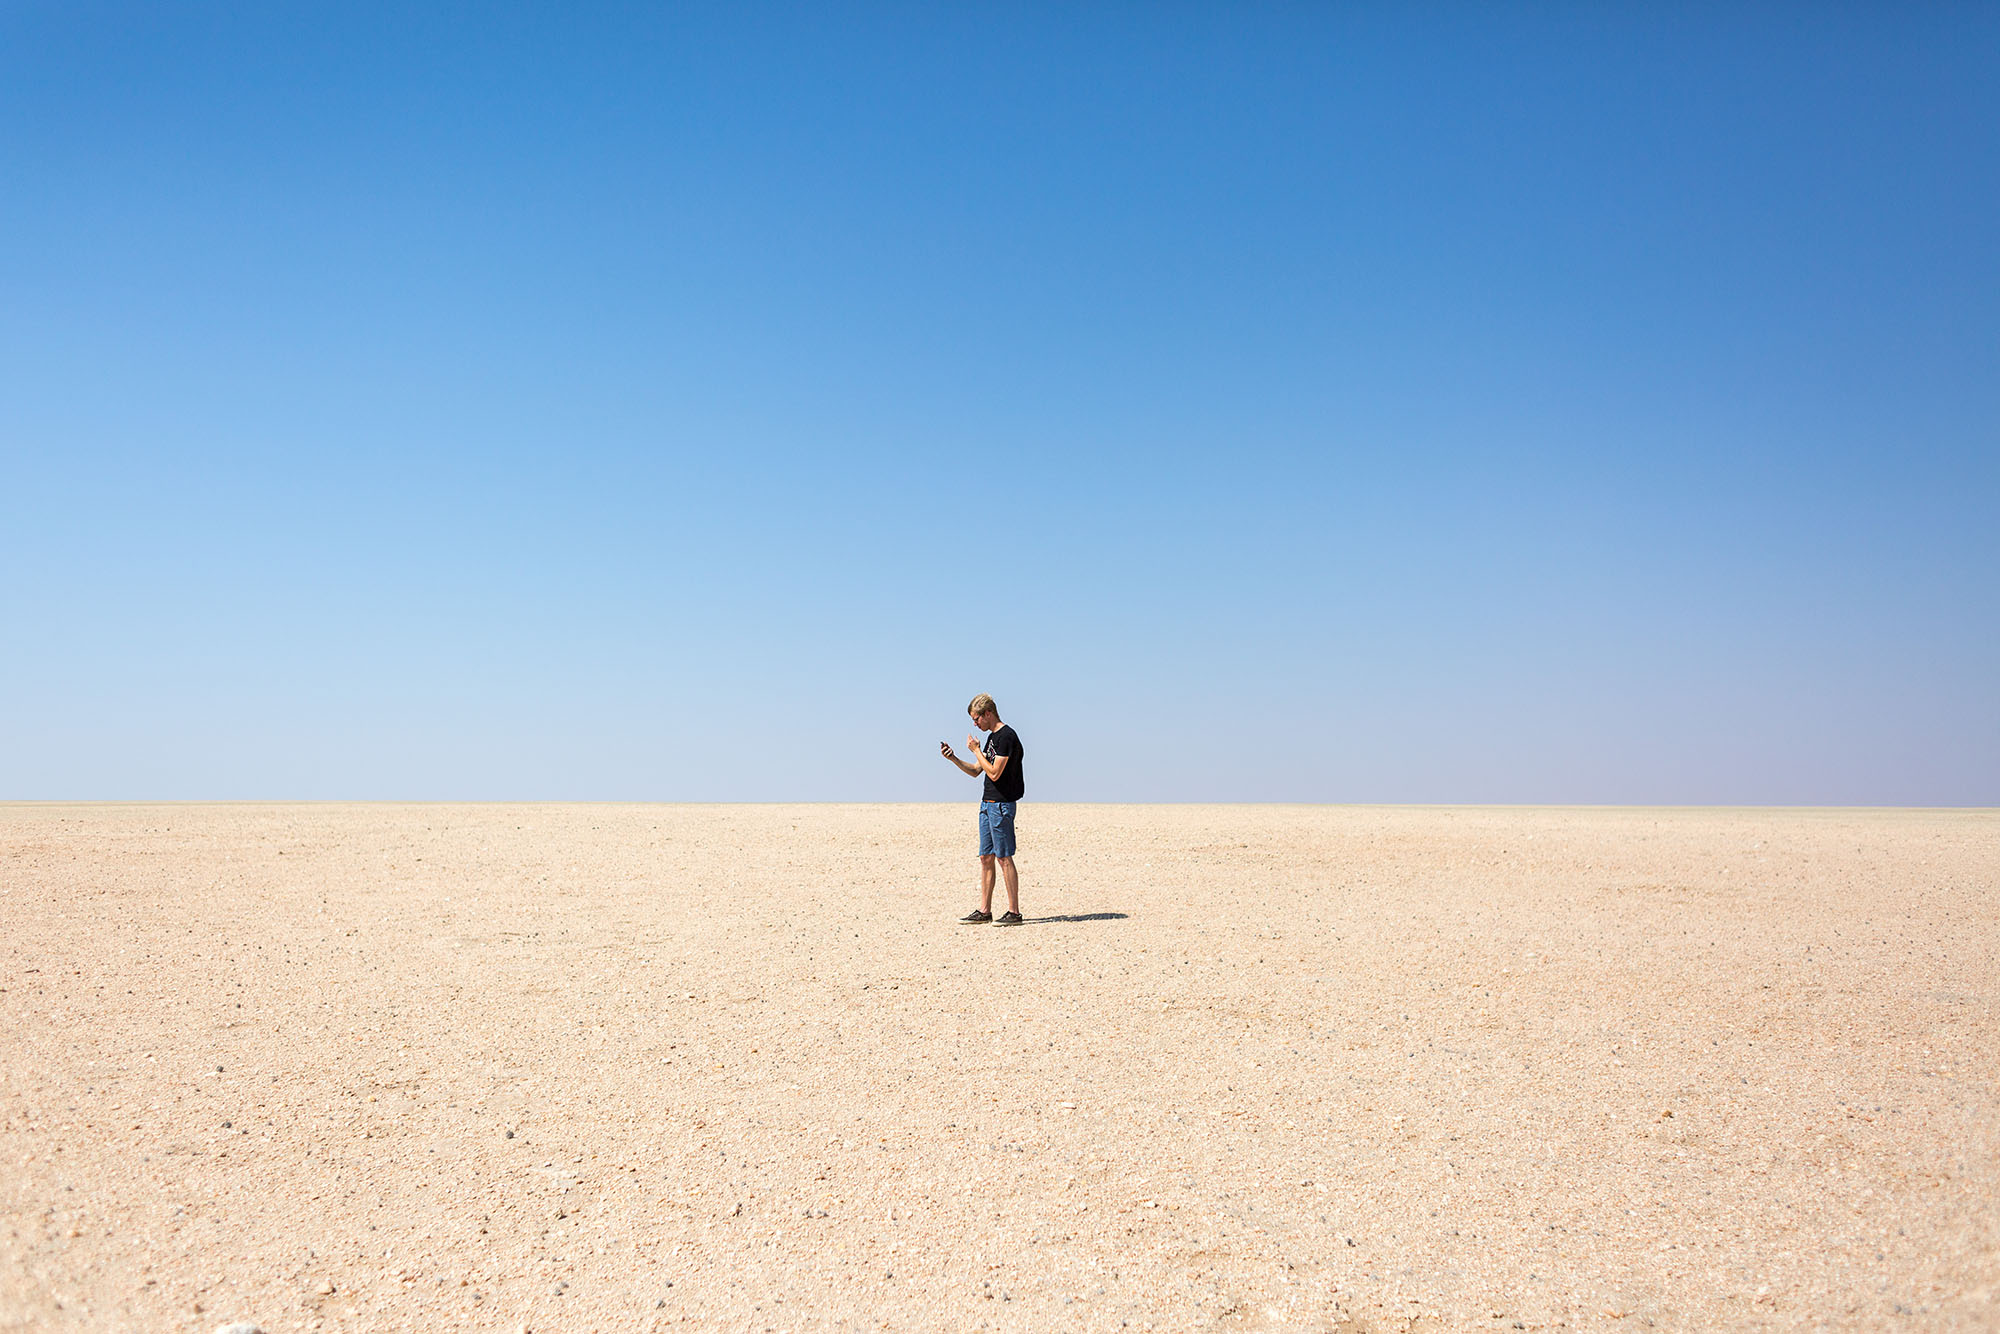 Jasper Vannueville of Vives University College, Belgium attempts to locate a plant with GPS on the desolate gravel plains of the Namib.